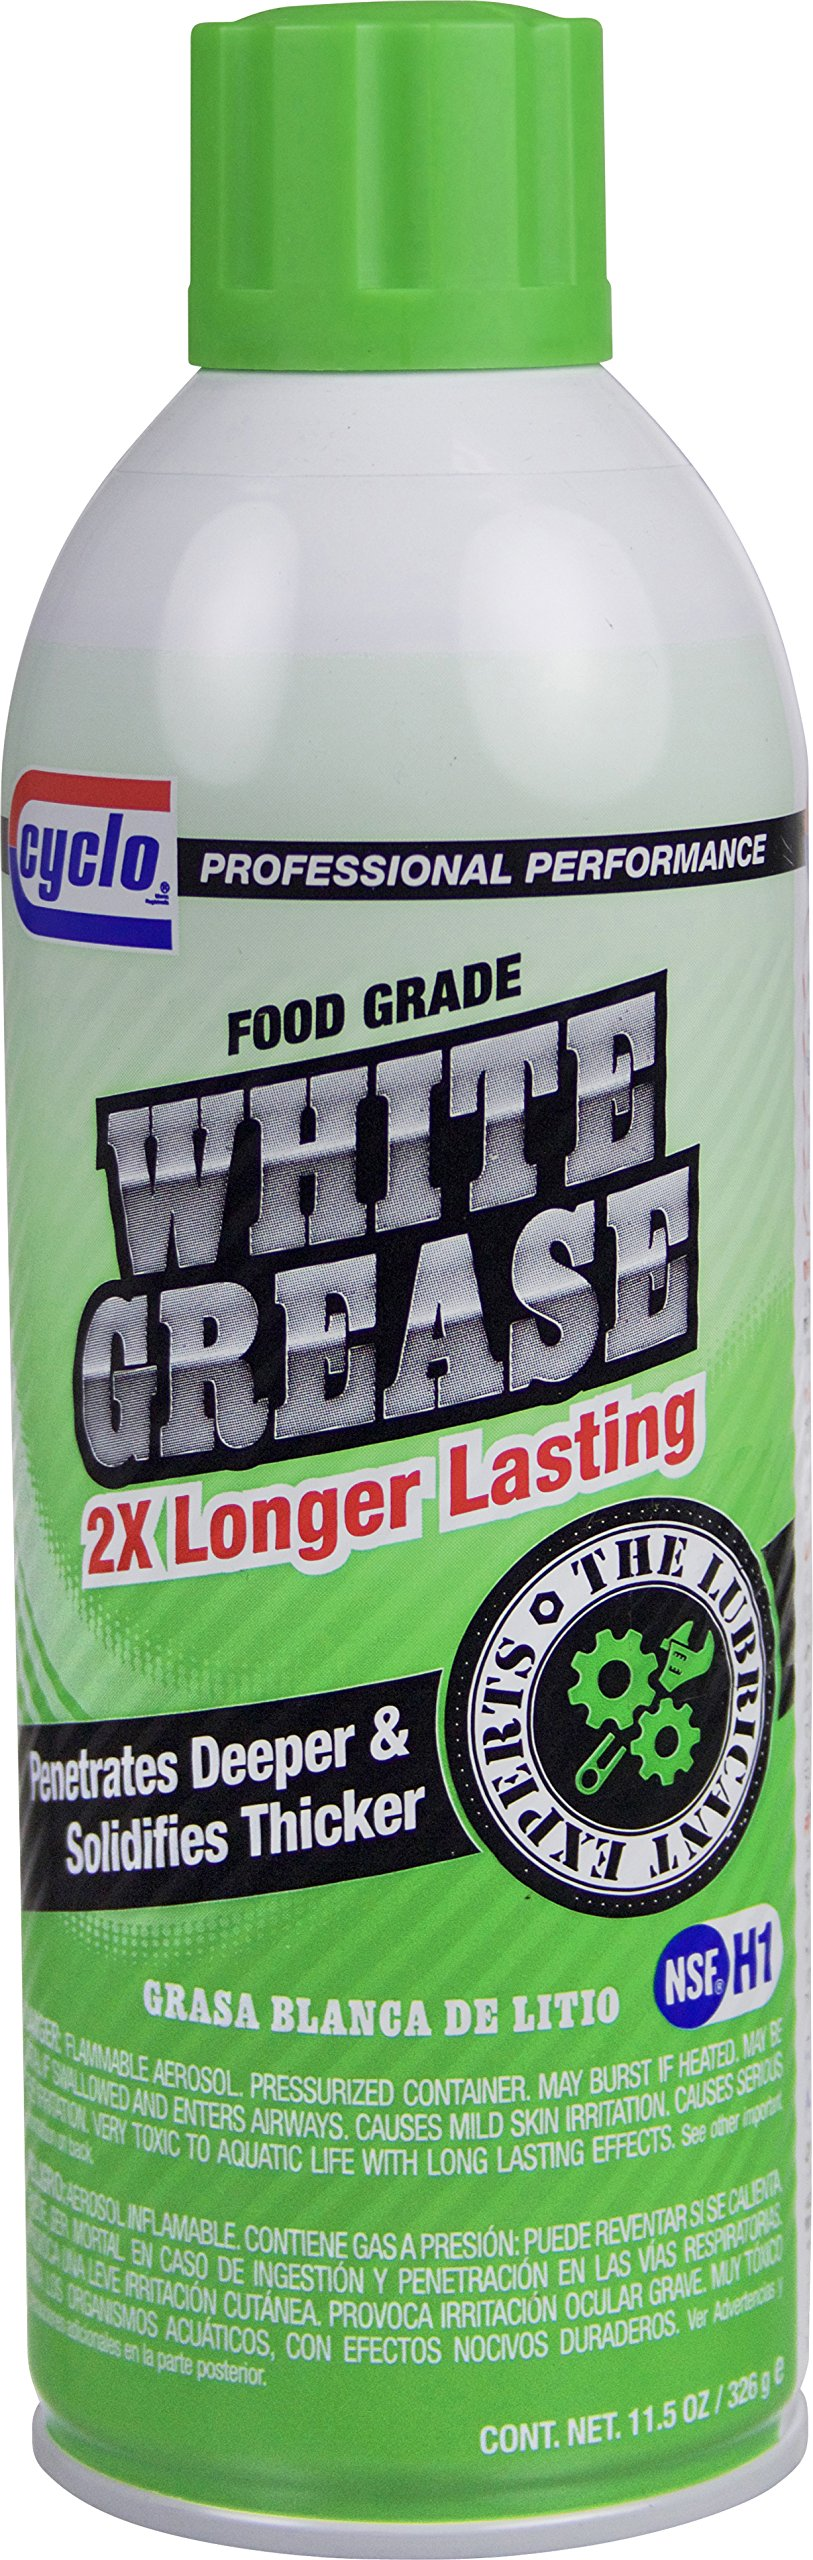 Cyclo White Grease Lithium Lubricant, 11.5 fl oz, Case of 12